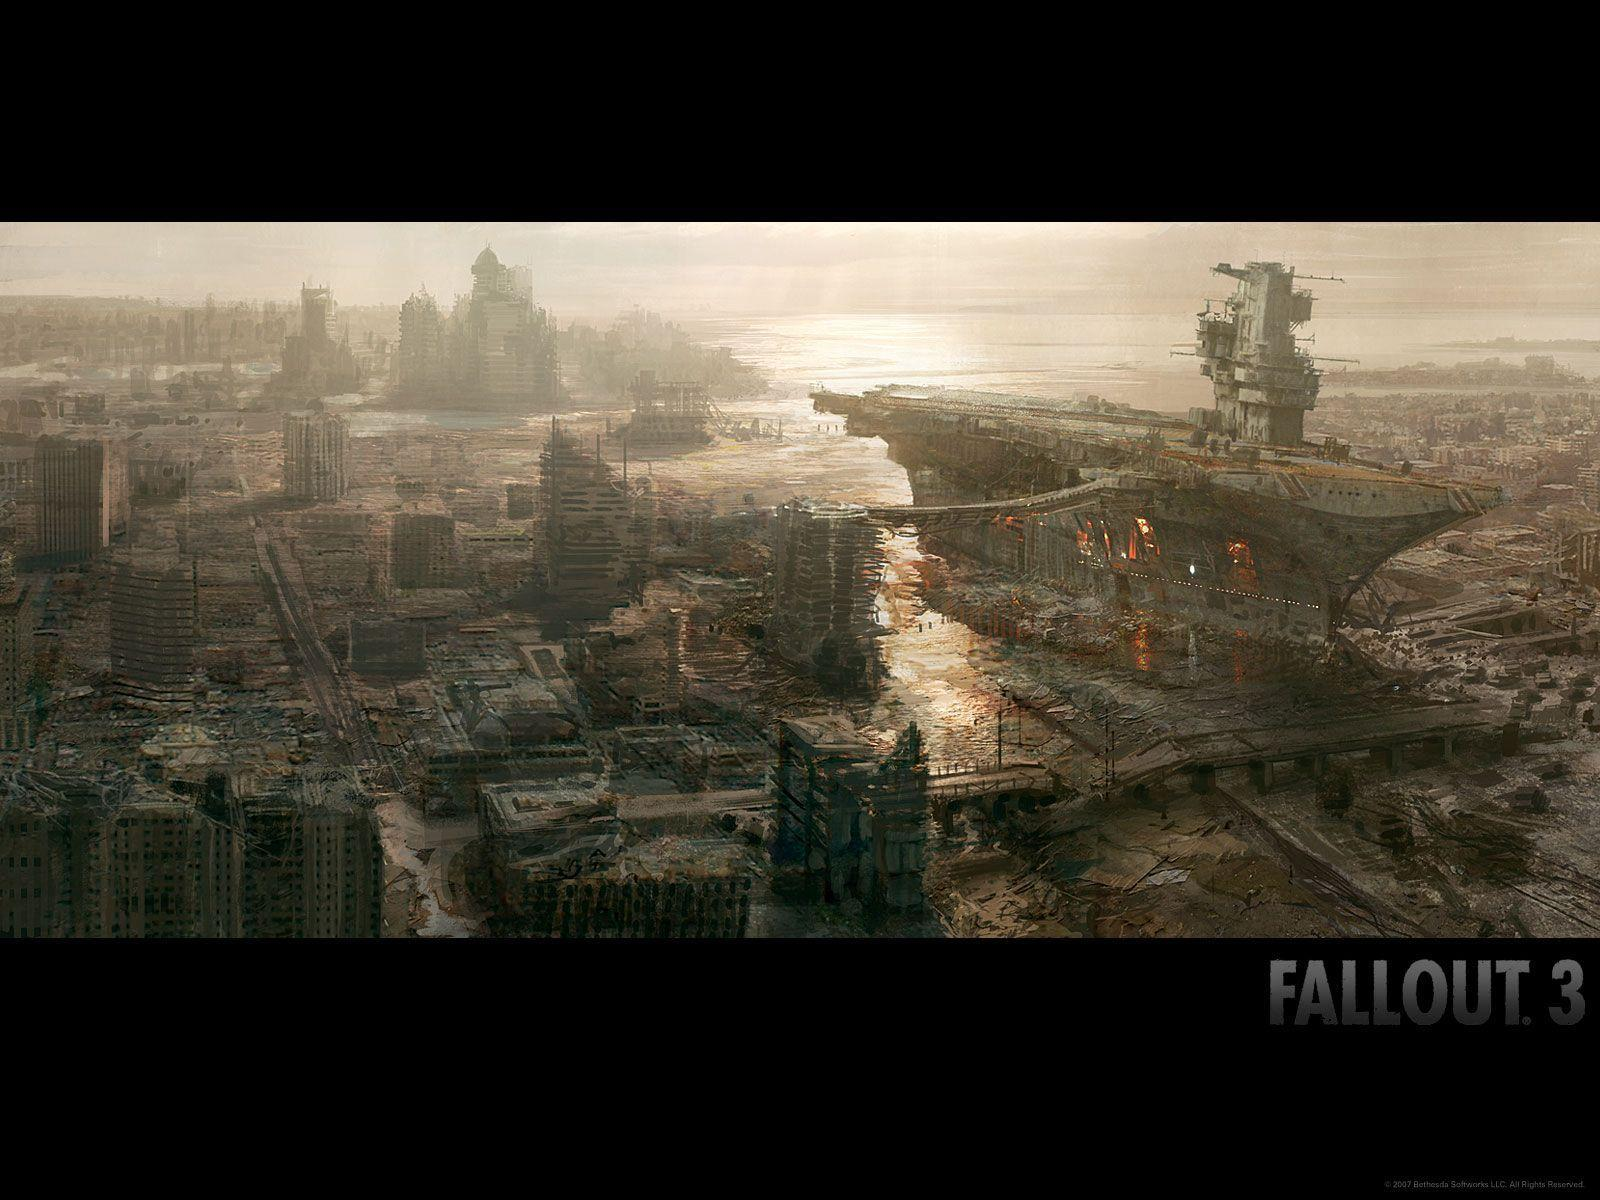 Fallout Wallpapers | HD Wallpapers Base